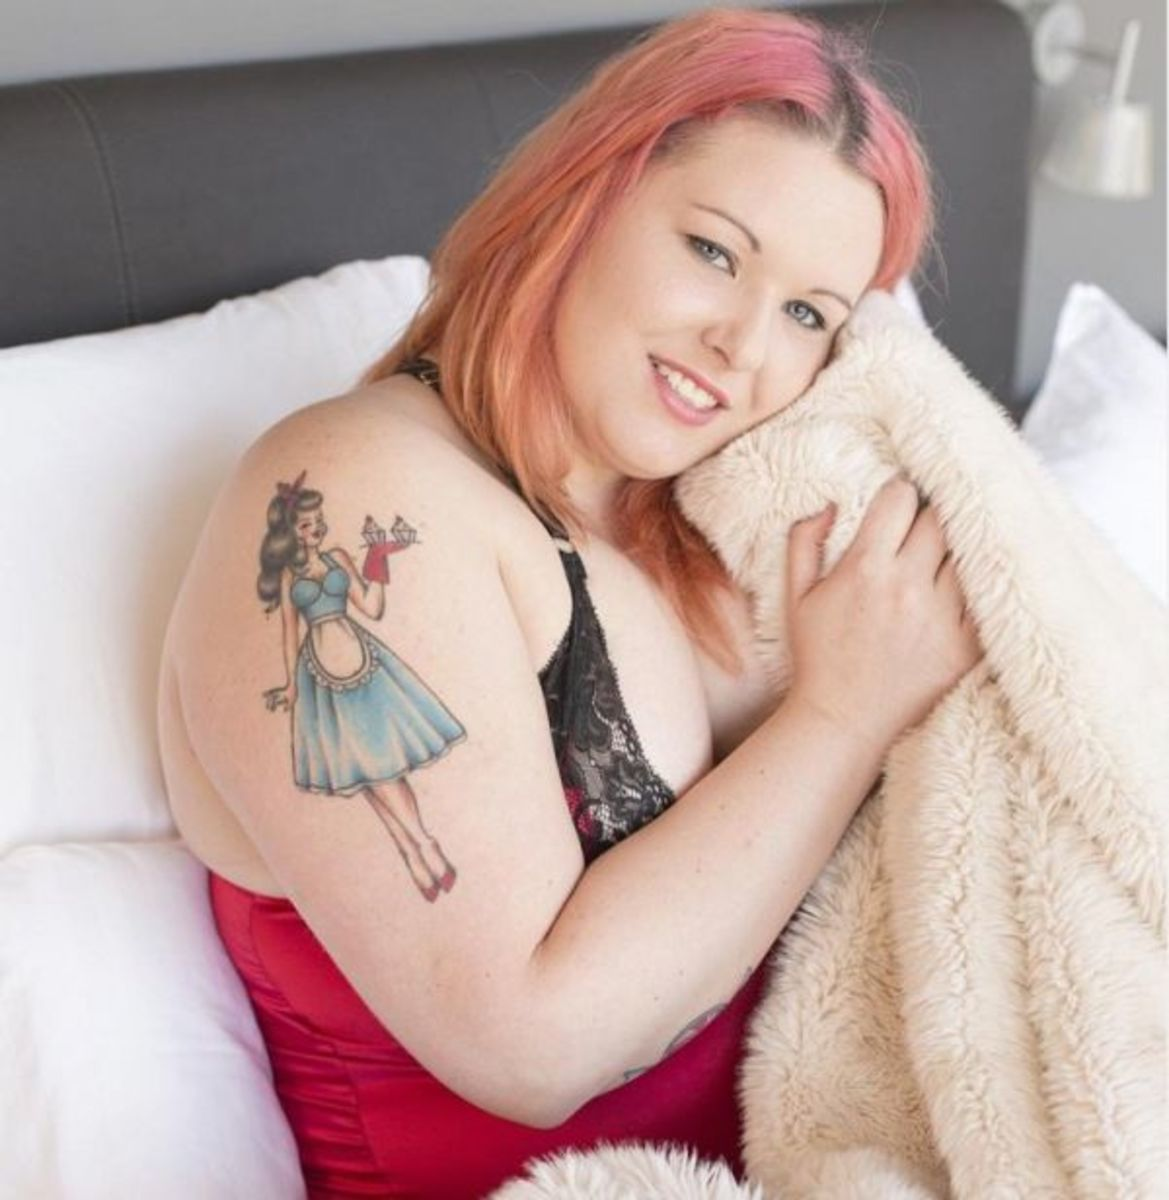 inked-and-curvy